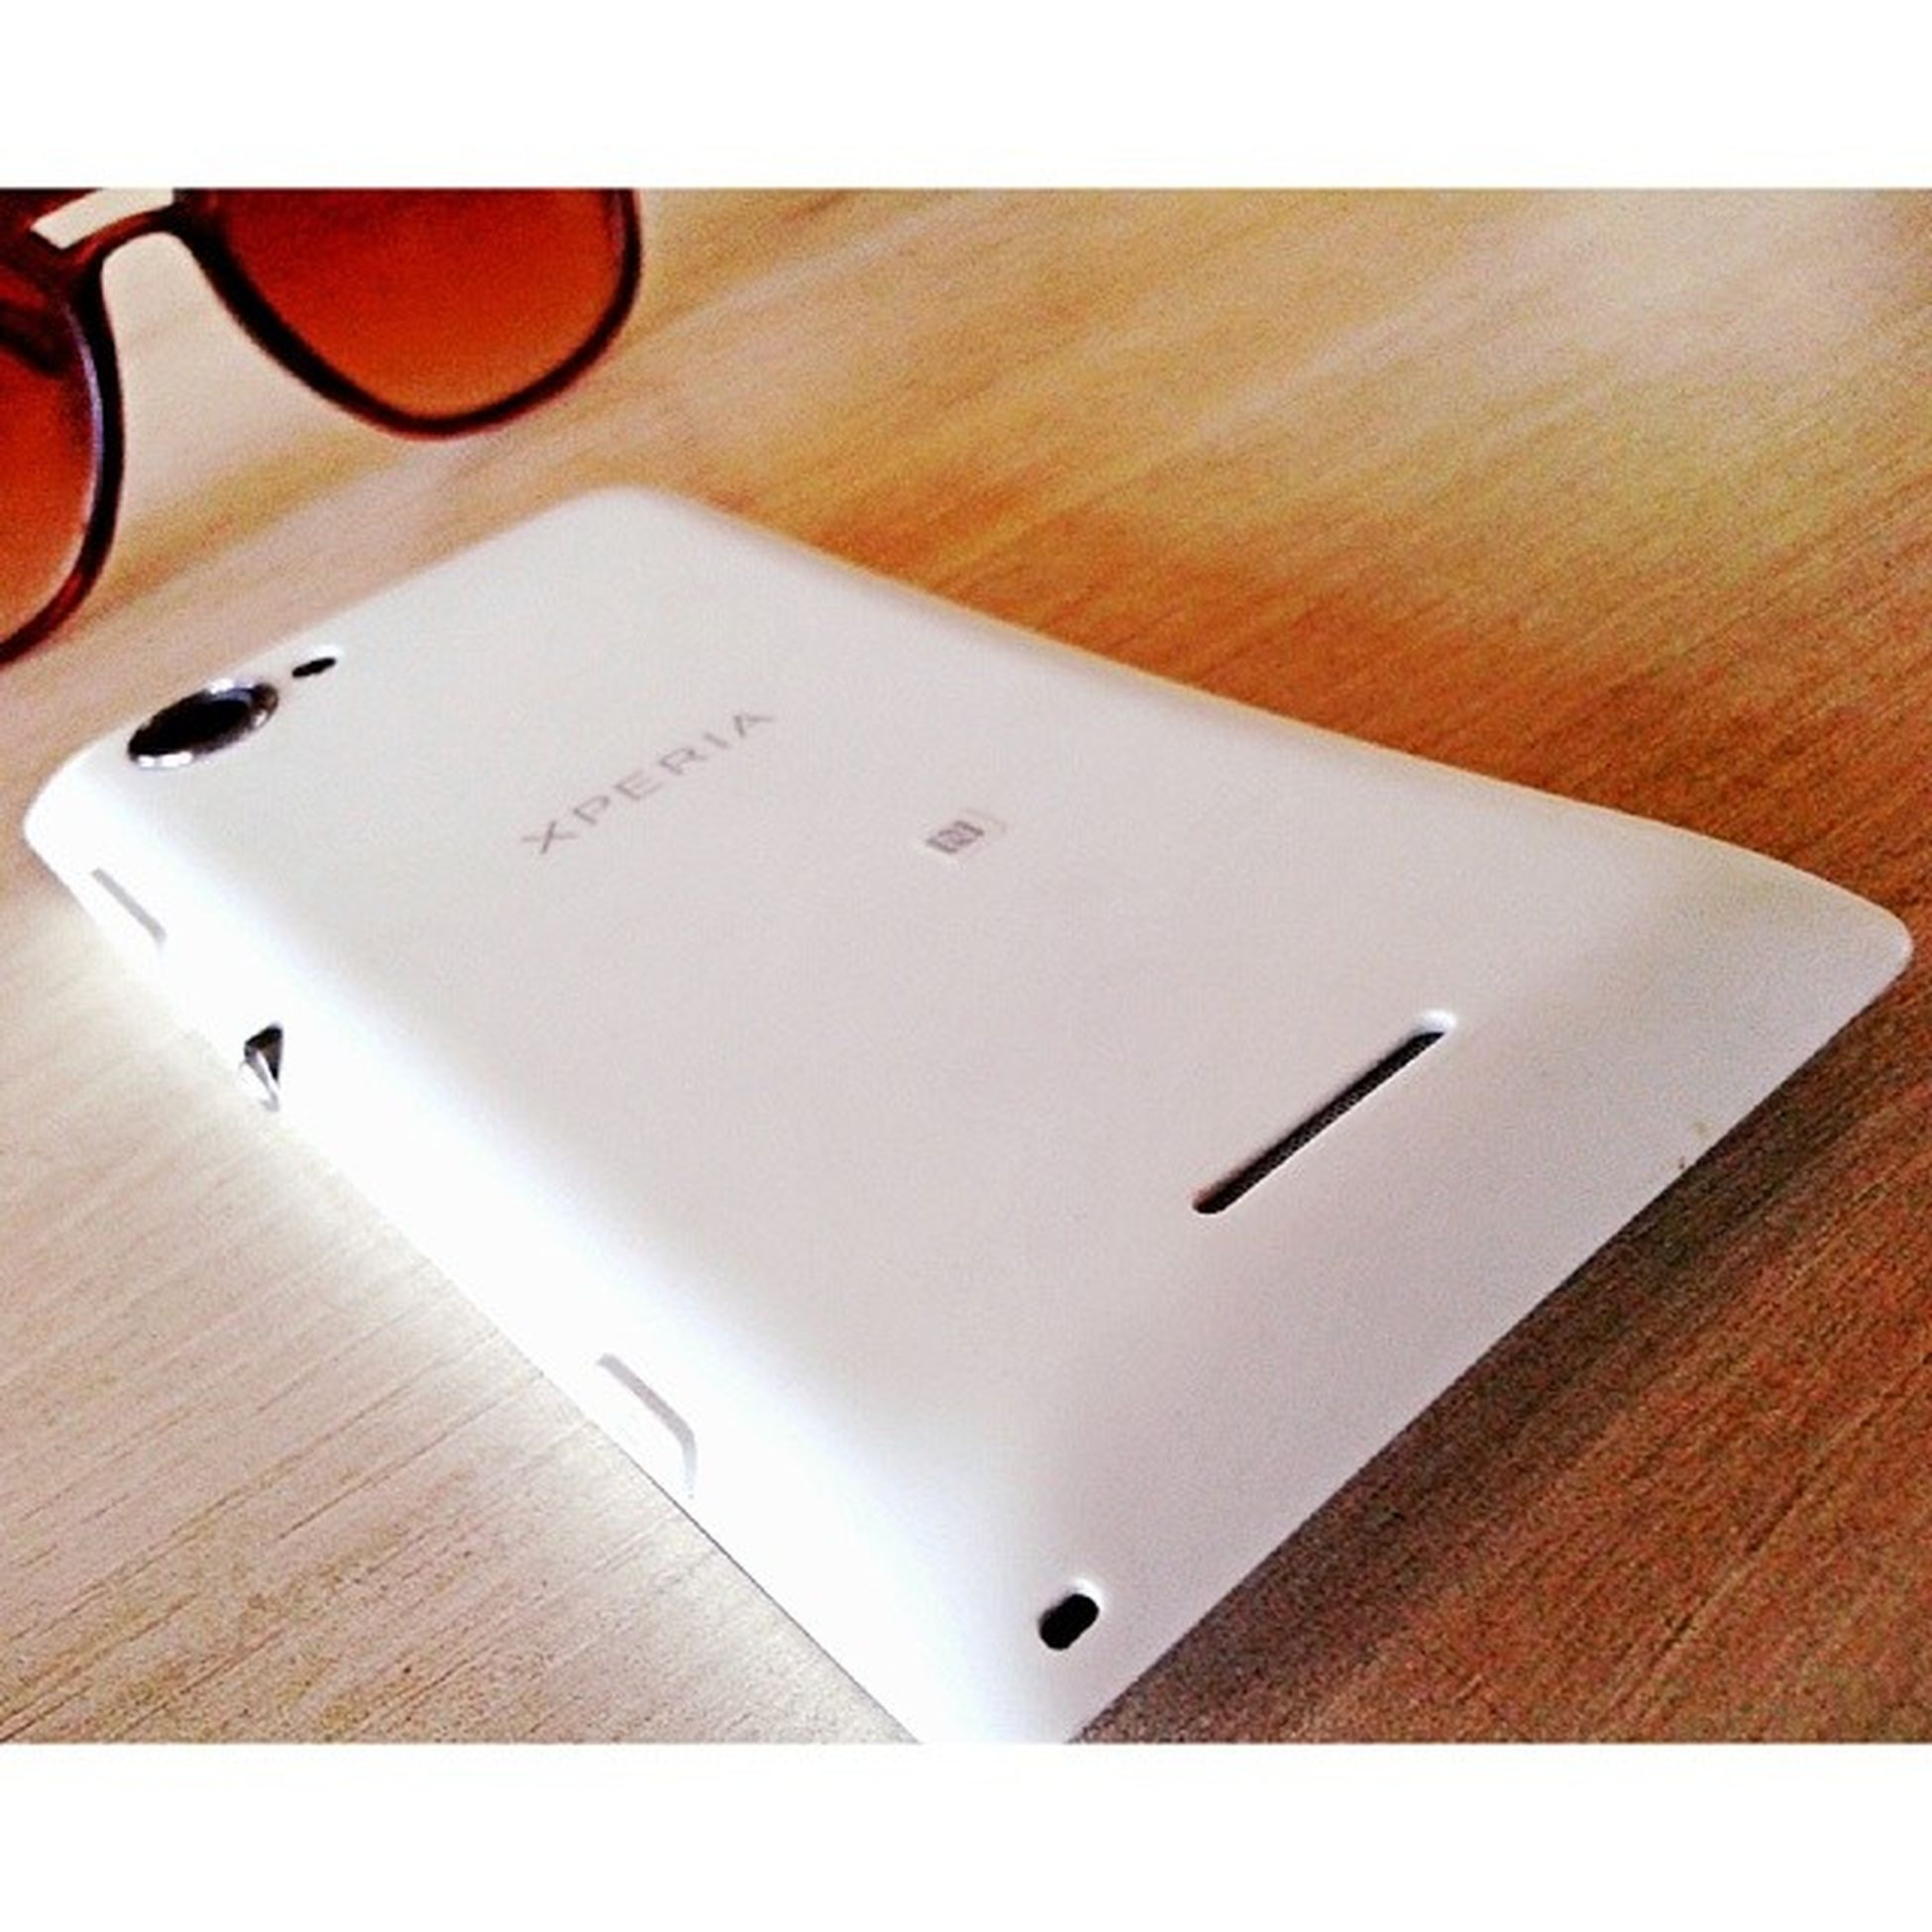 Owned By a frnd F mine! Okay! Admitted, It beats my GalaxyCore by Design nd Looks ! Core XperiaL Sony College Library White Killer